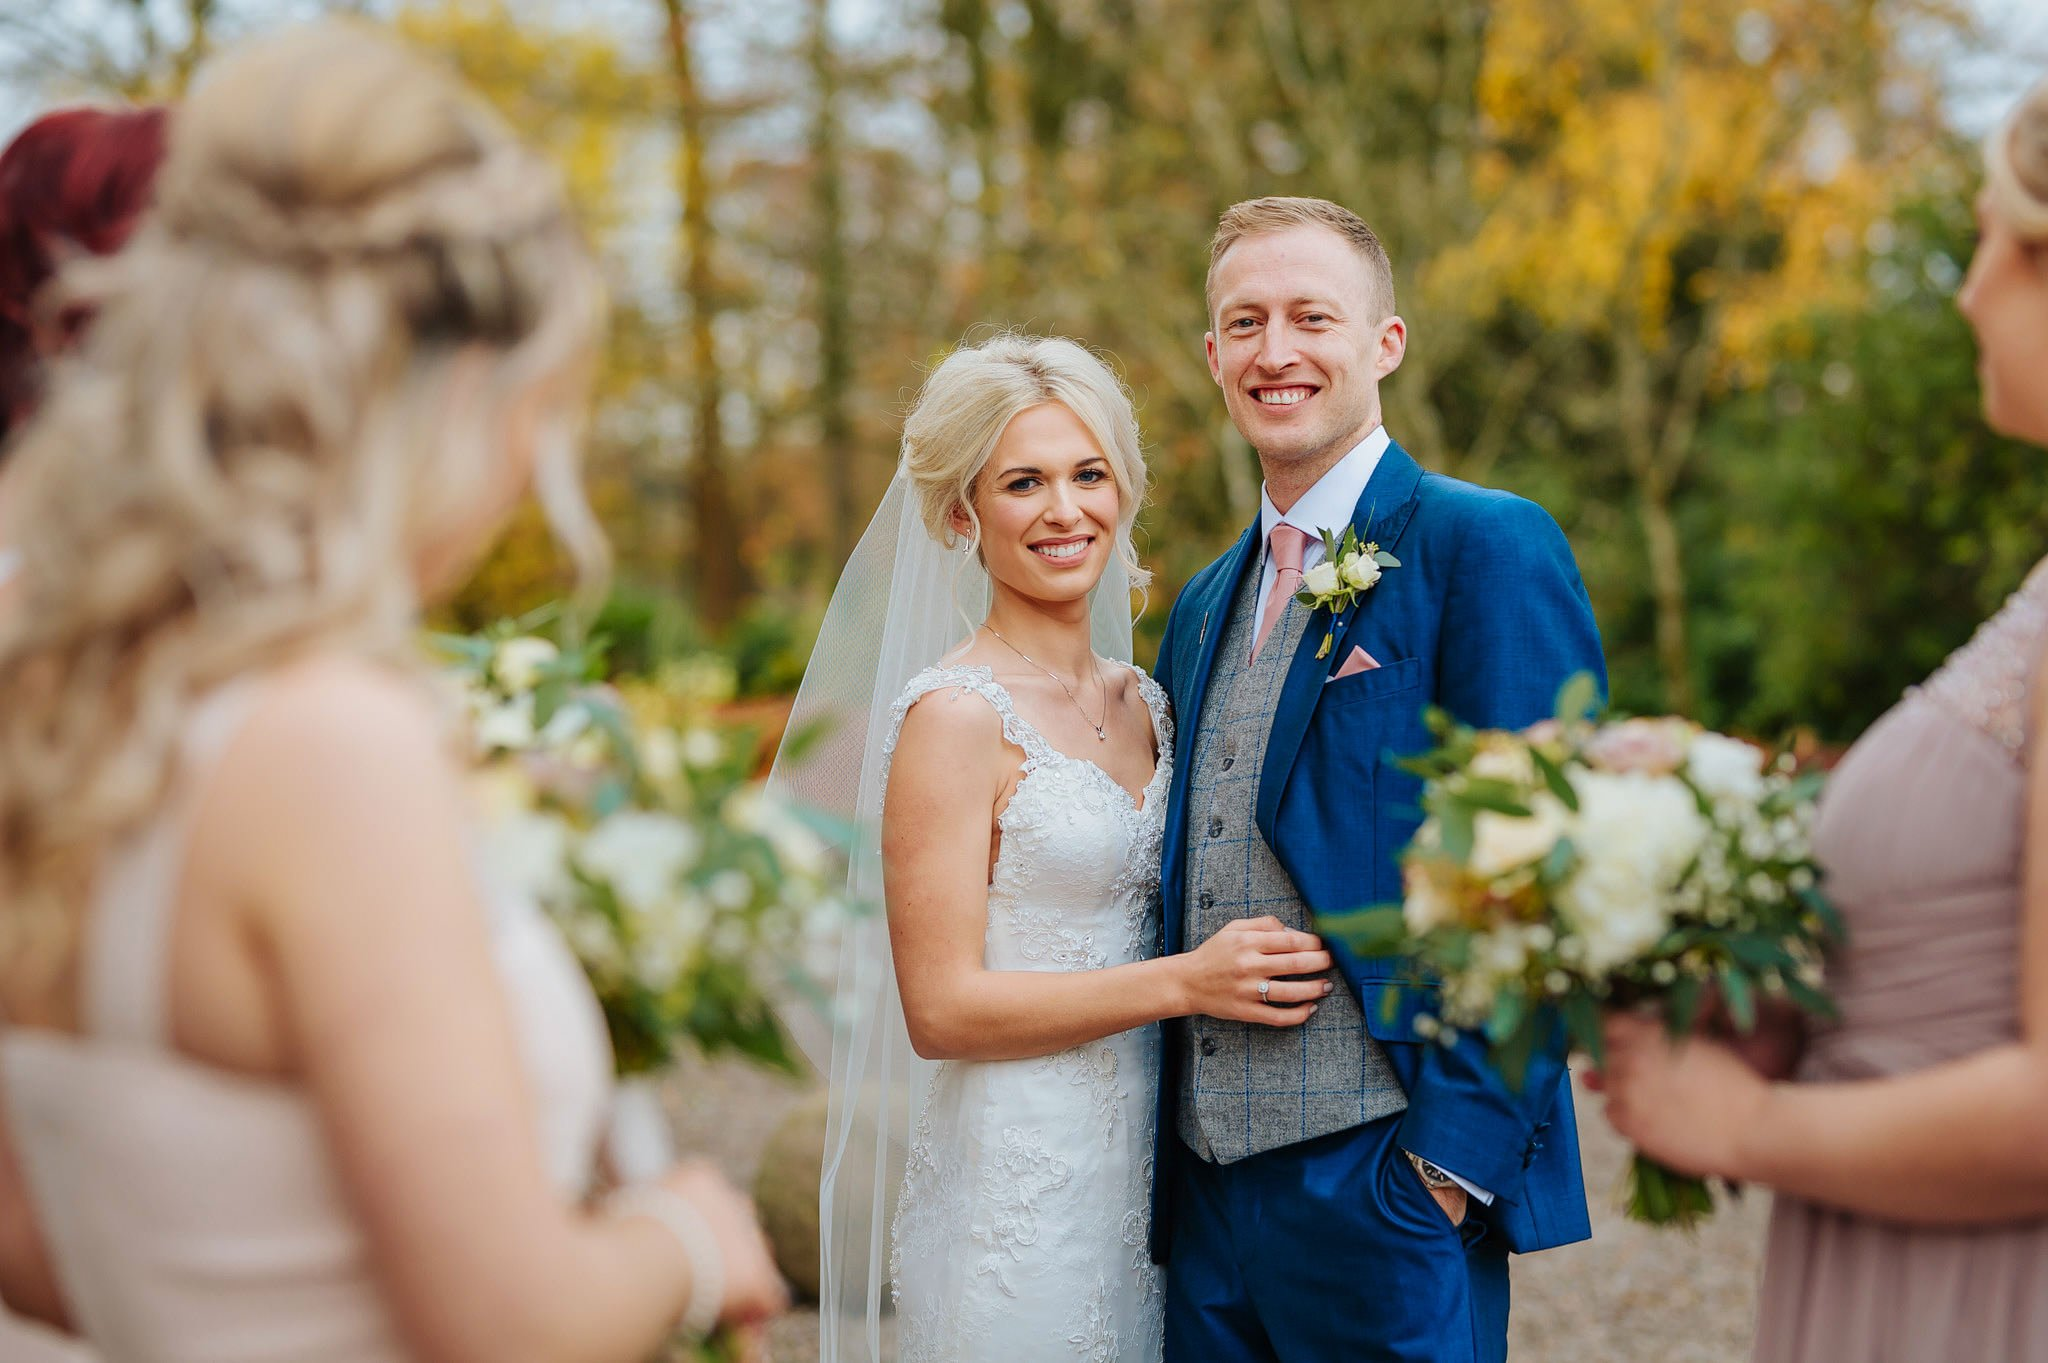 sigma 85mm art review wedding photography 114 - Sigma 85mm F1.4 ART review vs Wedding Photography